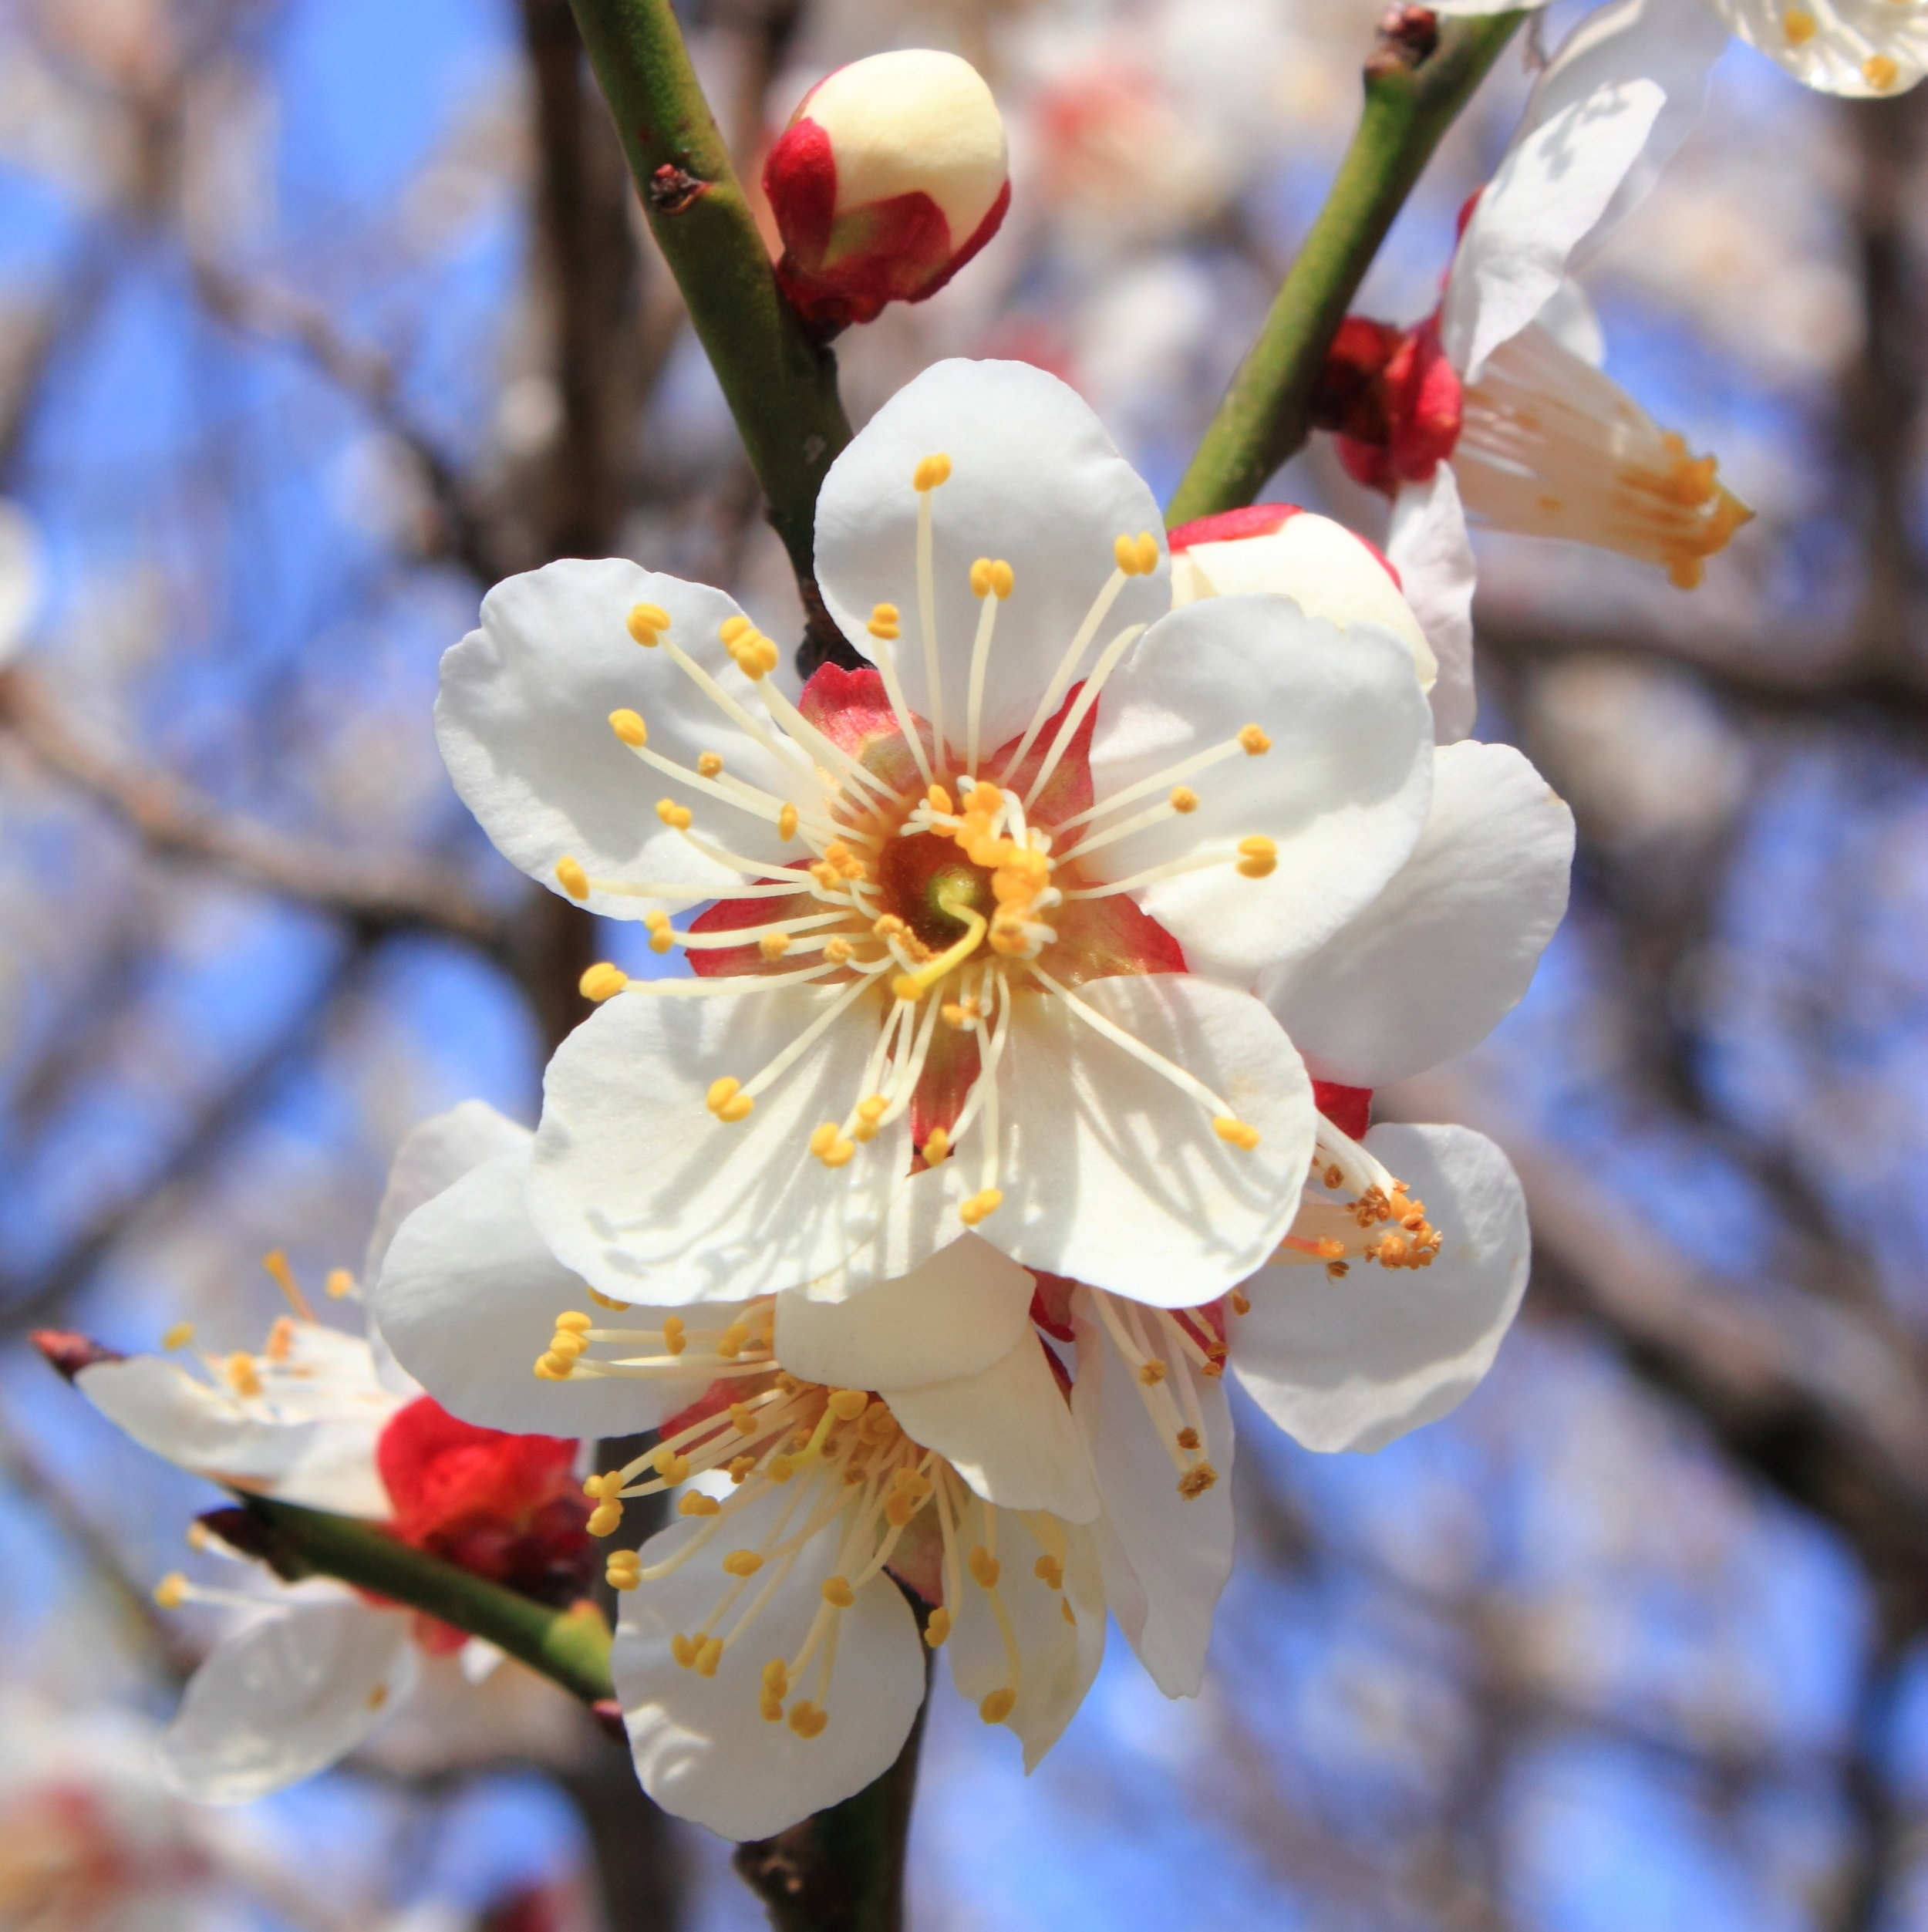 Plum blossom. By Kakidai (Own work) [CC BY-SA 3.0 (https://creativecommons.org/licenses/by-sa/3.0)], via Wikimedia Commons